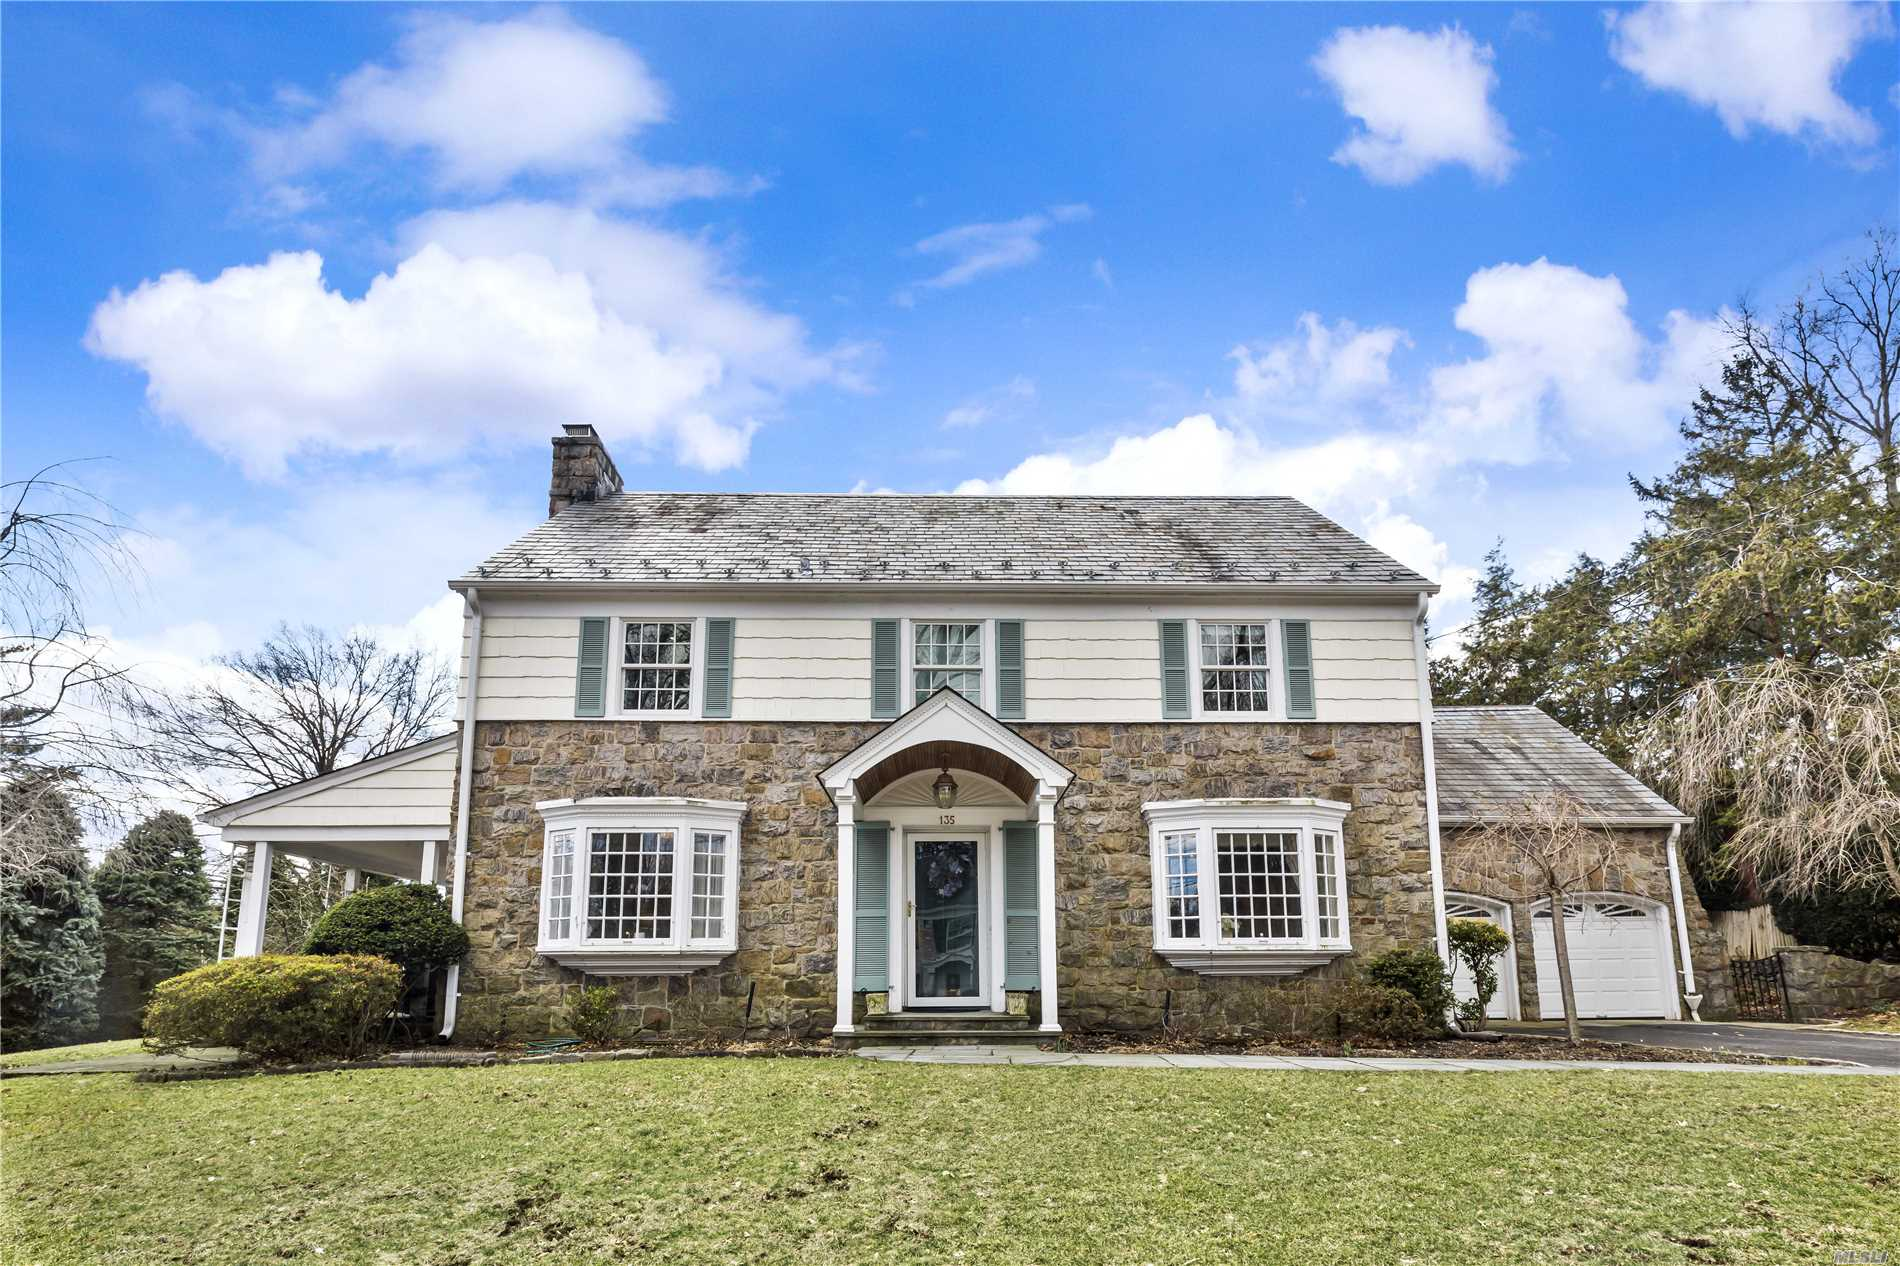 Gracious Munsey Park Chc, Elegant Foyer , Lr & Fdr, Spacious Rooms W/ Beautiful Mill Work. Front And Rear Stairs, Updated Kitchen. New Master Bath, Gas Heating System.Additional Family Room W/Fire Place On Ll, Walk Up Attic, New Anderson Wood Right Windows. A Real Gem